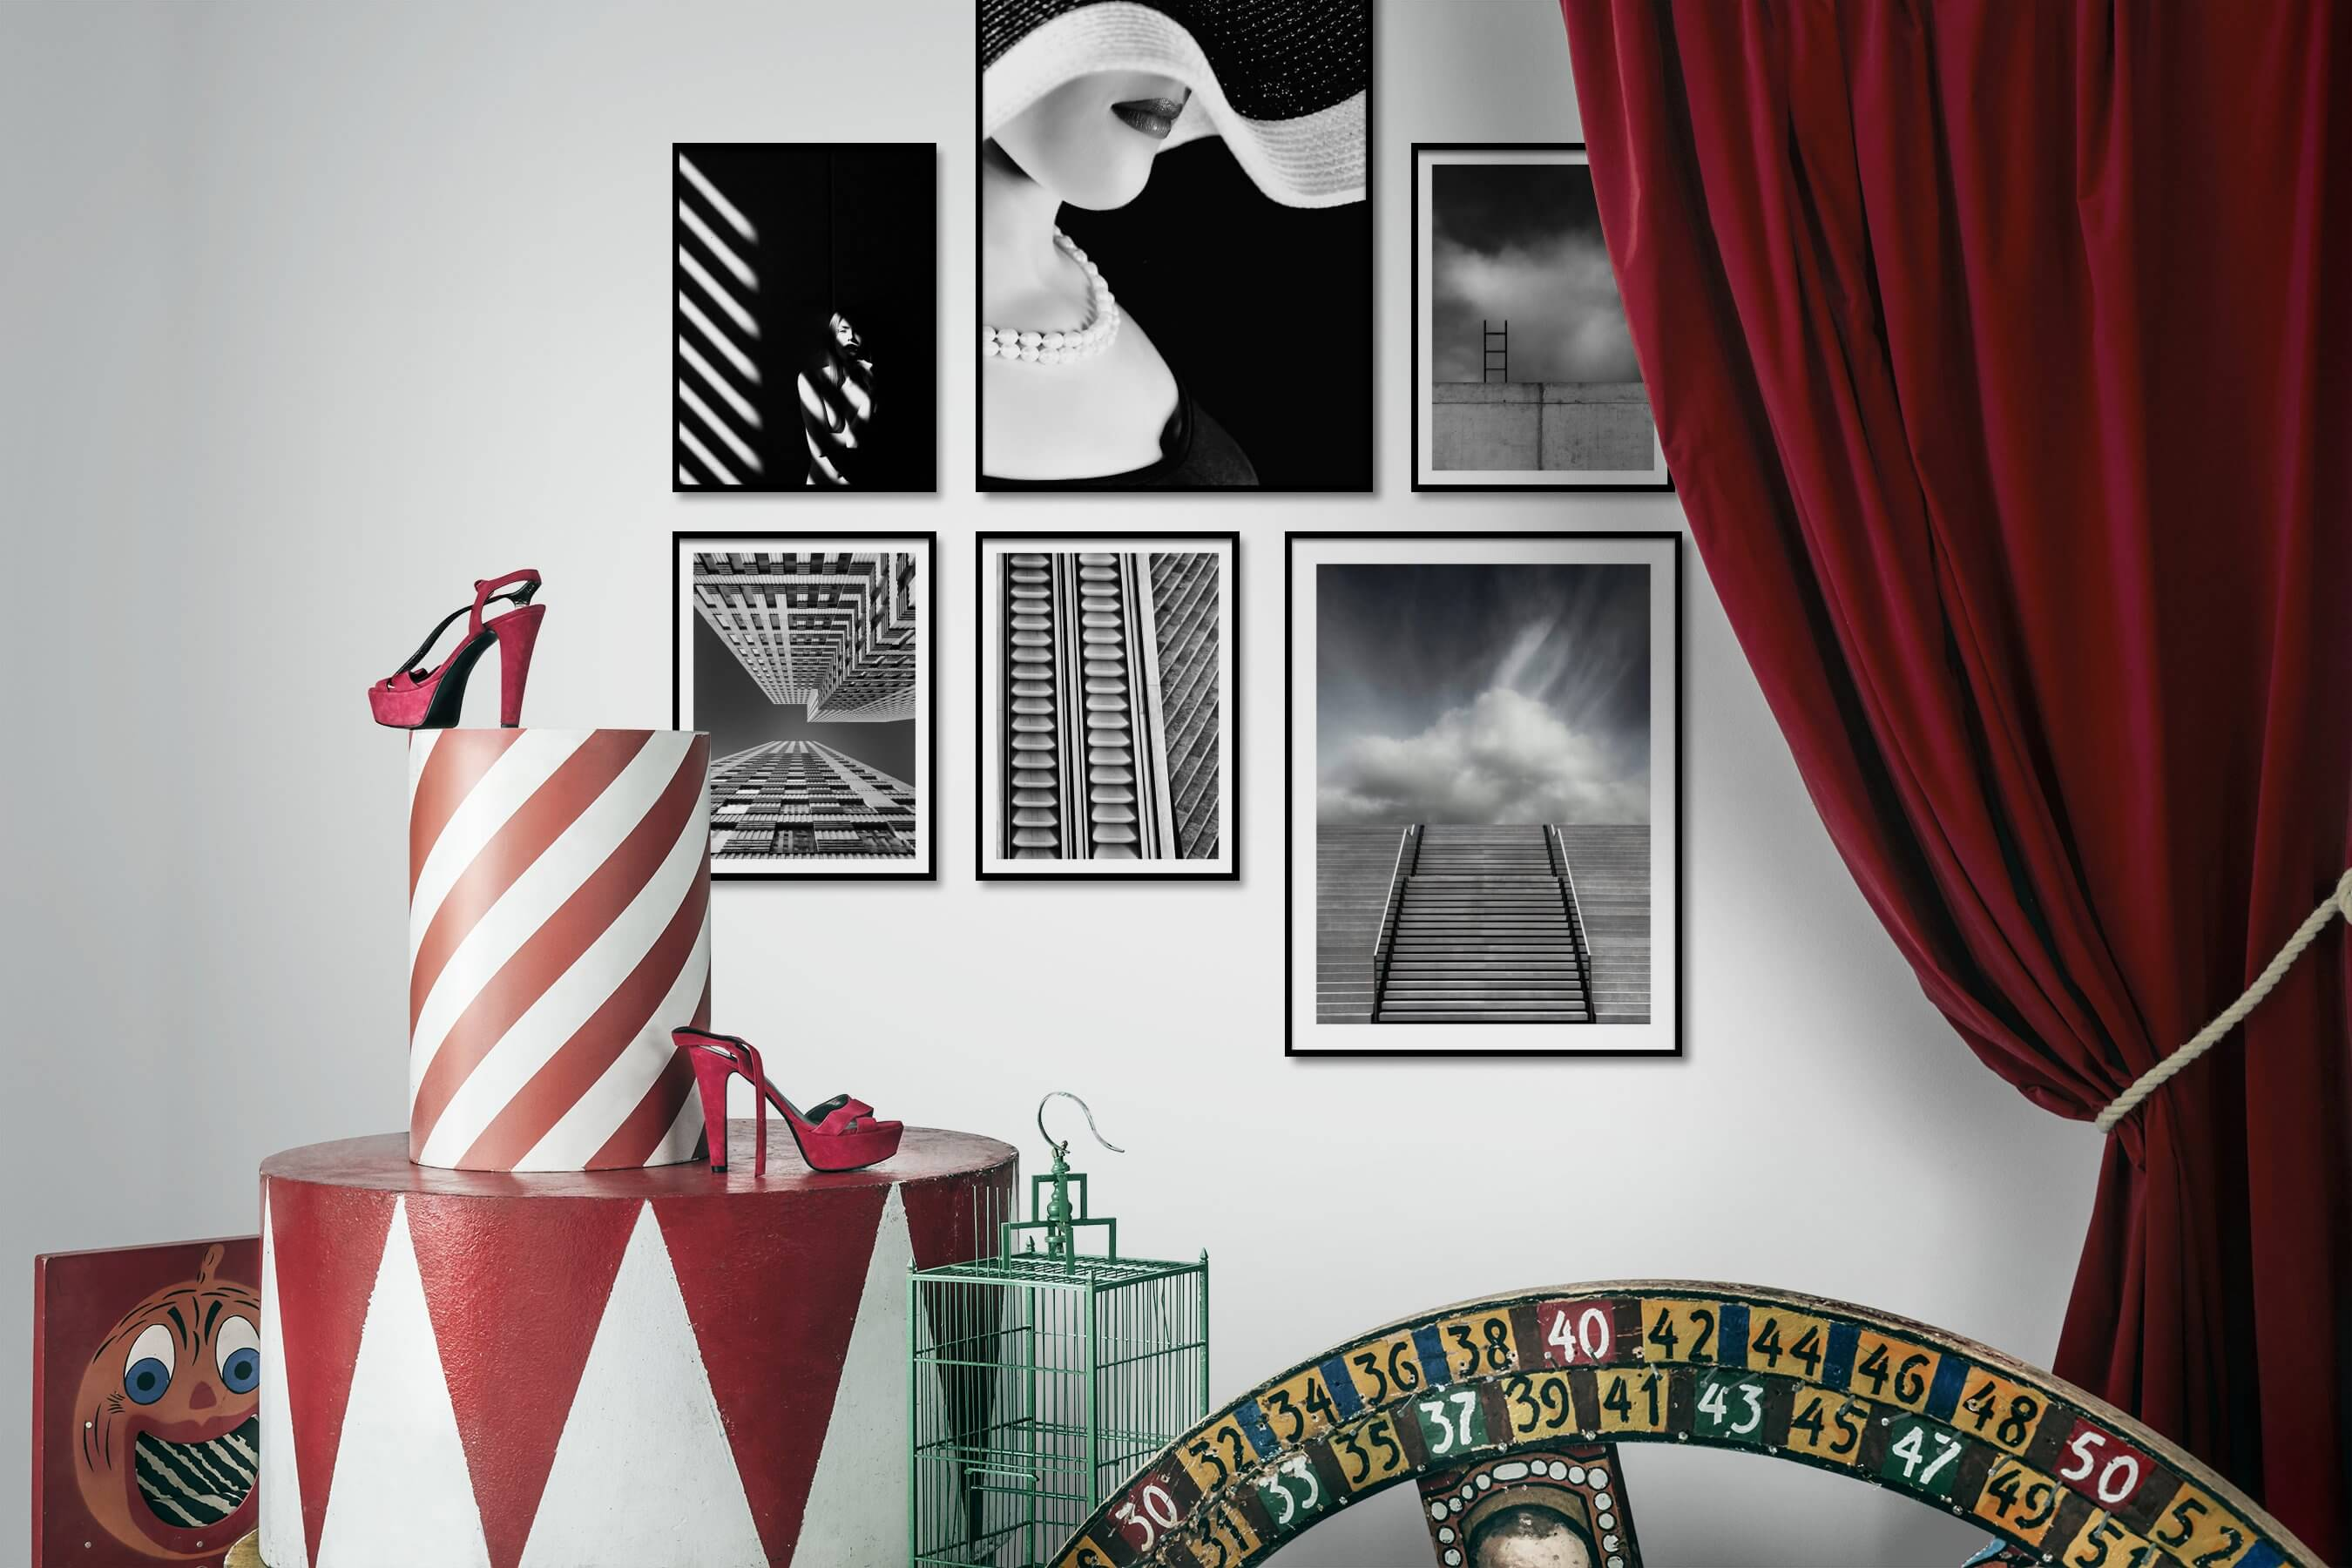 Gallery wall idea with six framed pictures arranged on a wall depicting Artsy, Black & White, Dark Tones, For the Minimalist, Fashion & Beauty, Vintage, For the Moderate, and City Life